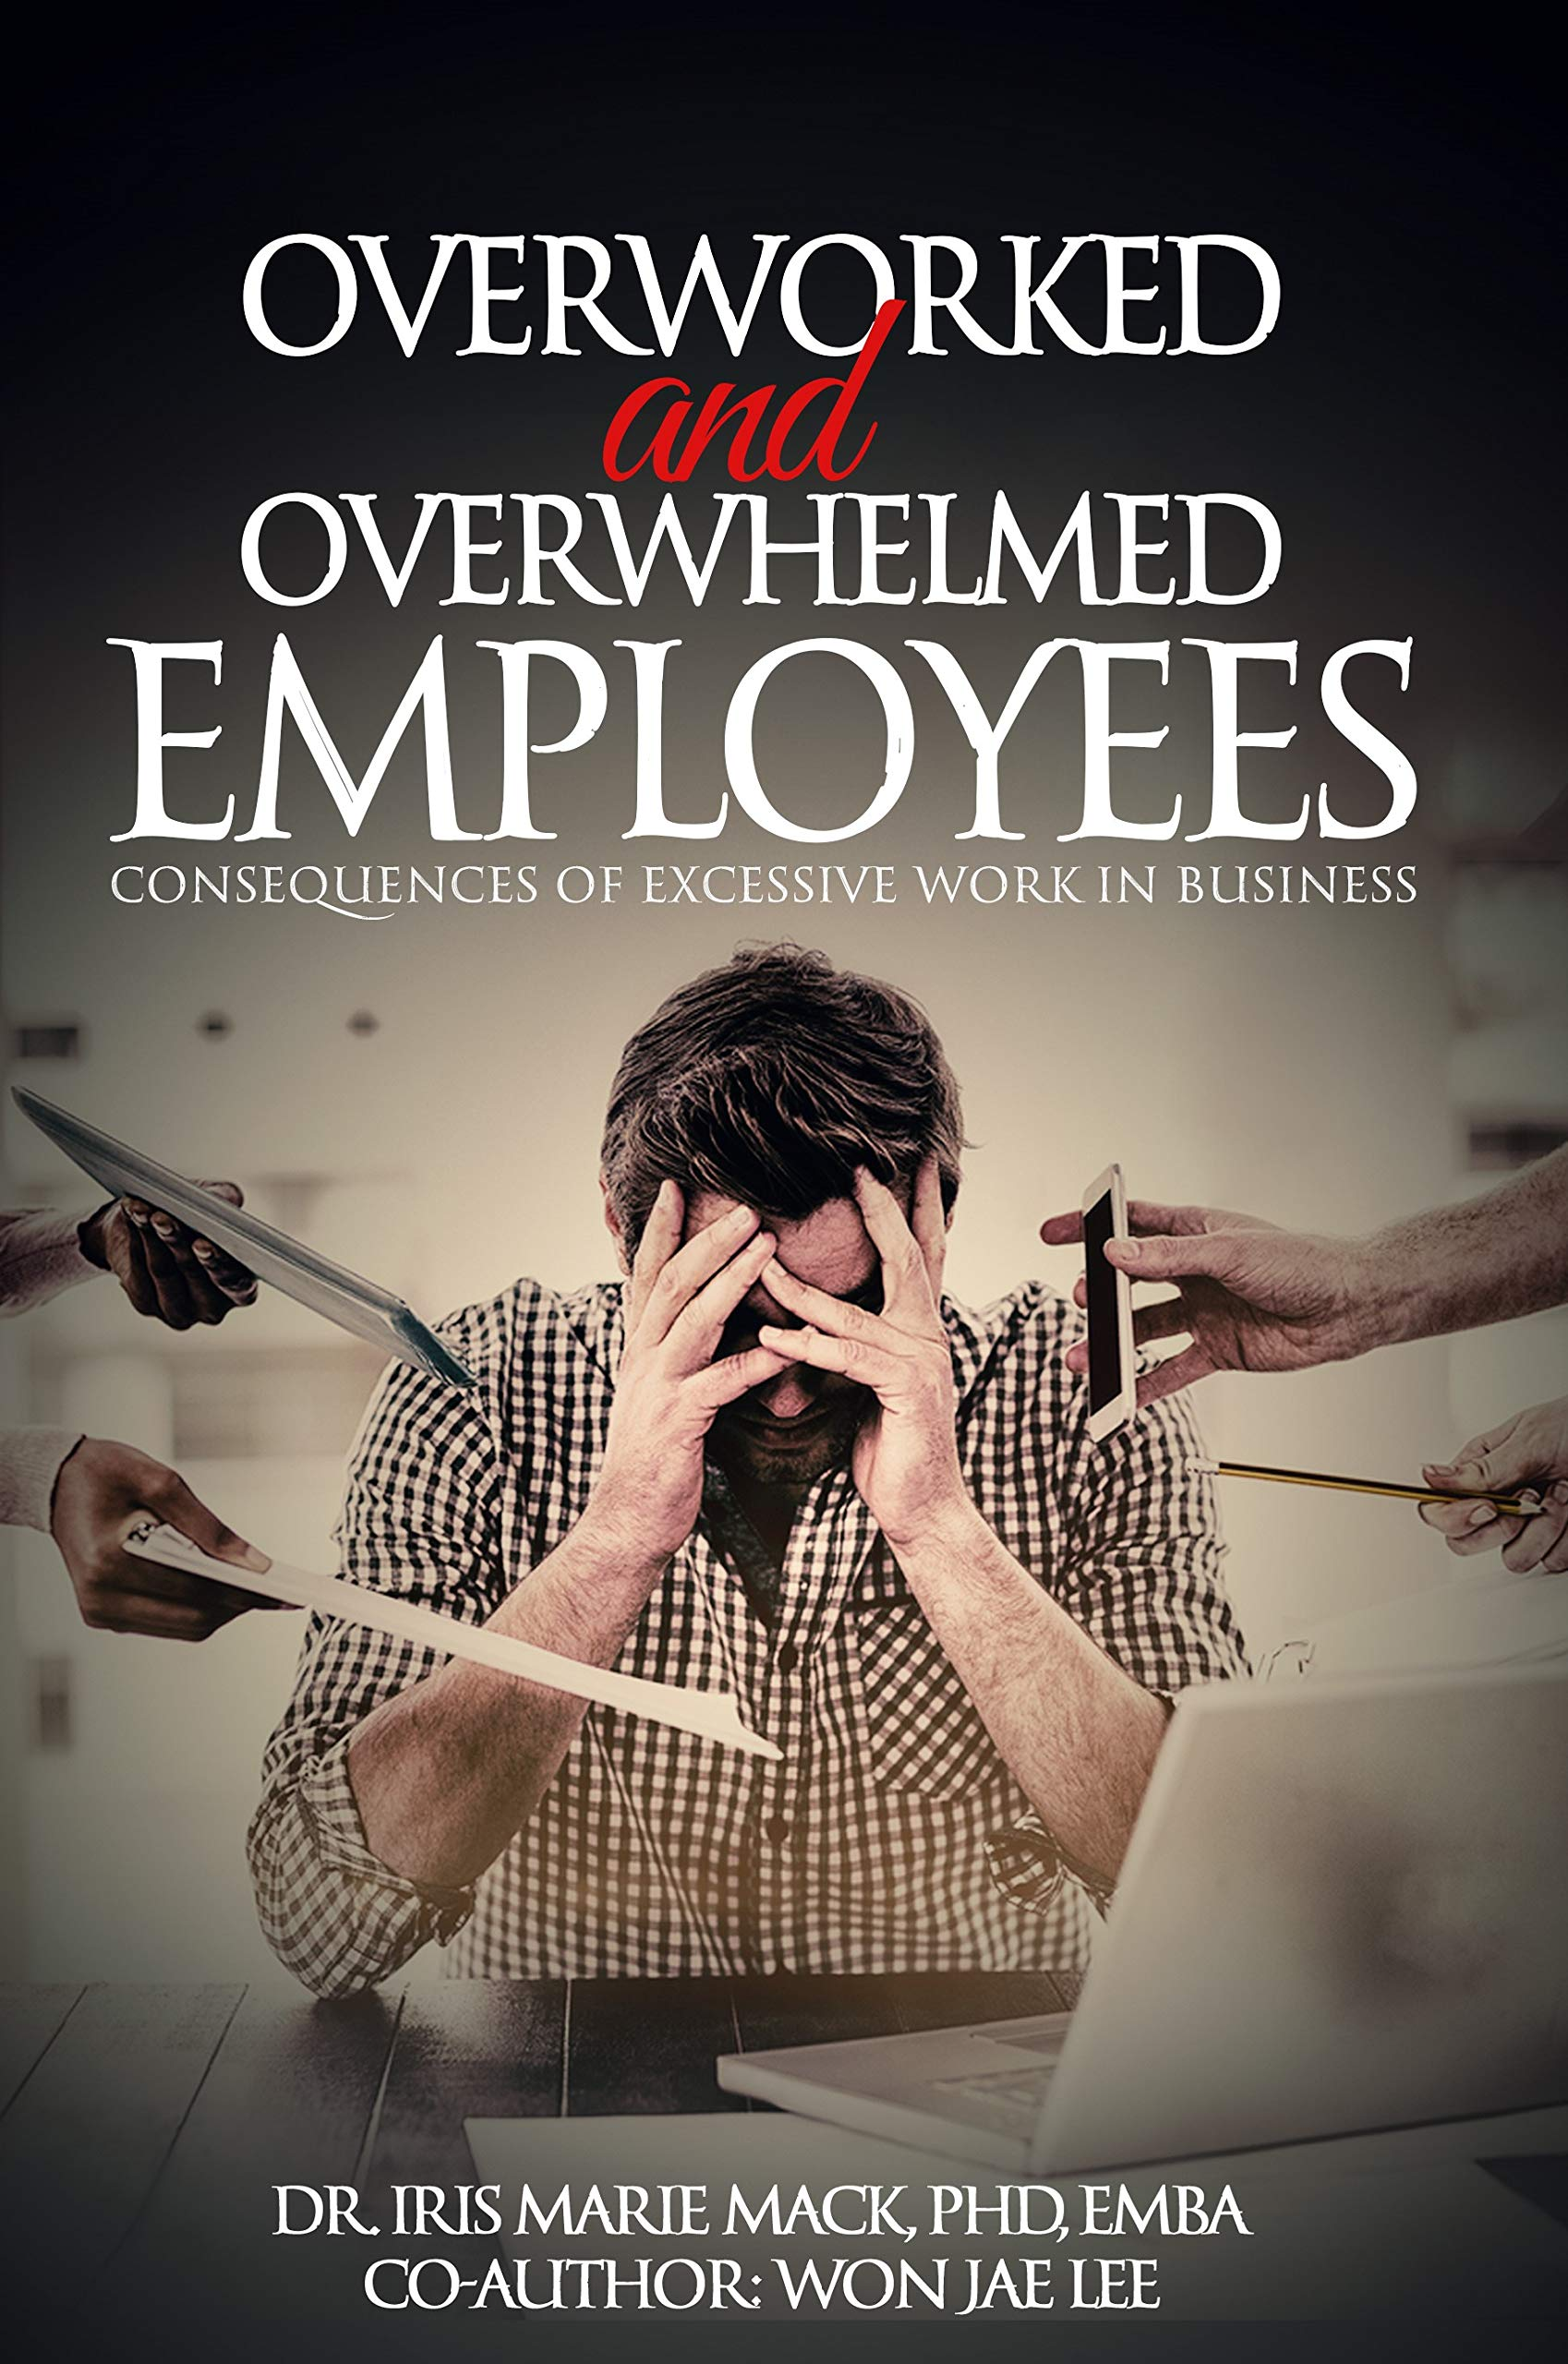 Overworked and Overwhelmed Employees: Consequences of Excessive Work in Business